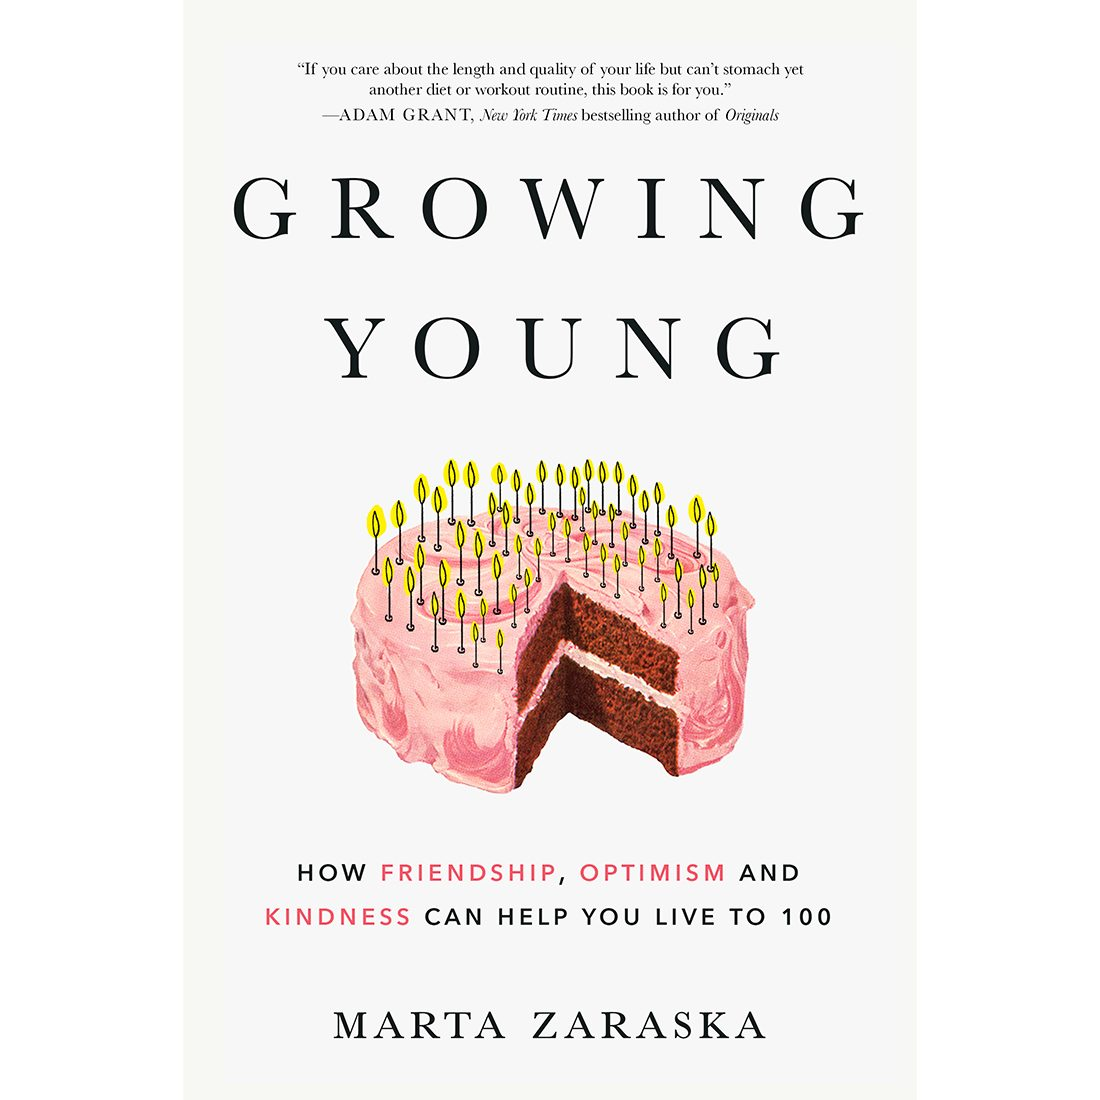 Growing Young book cover